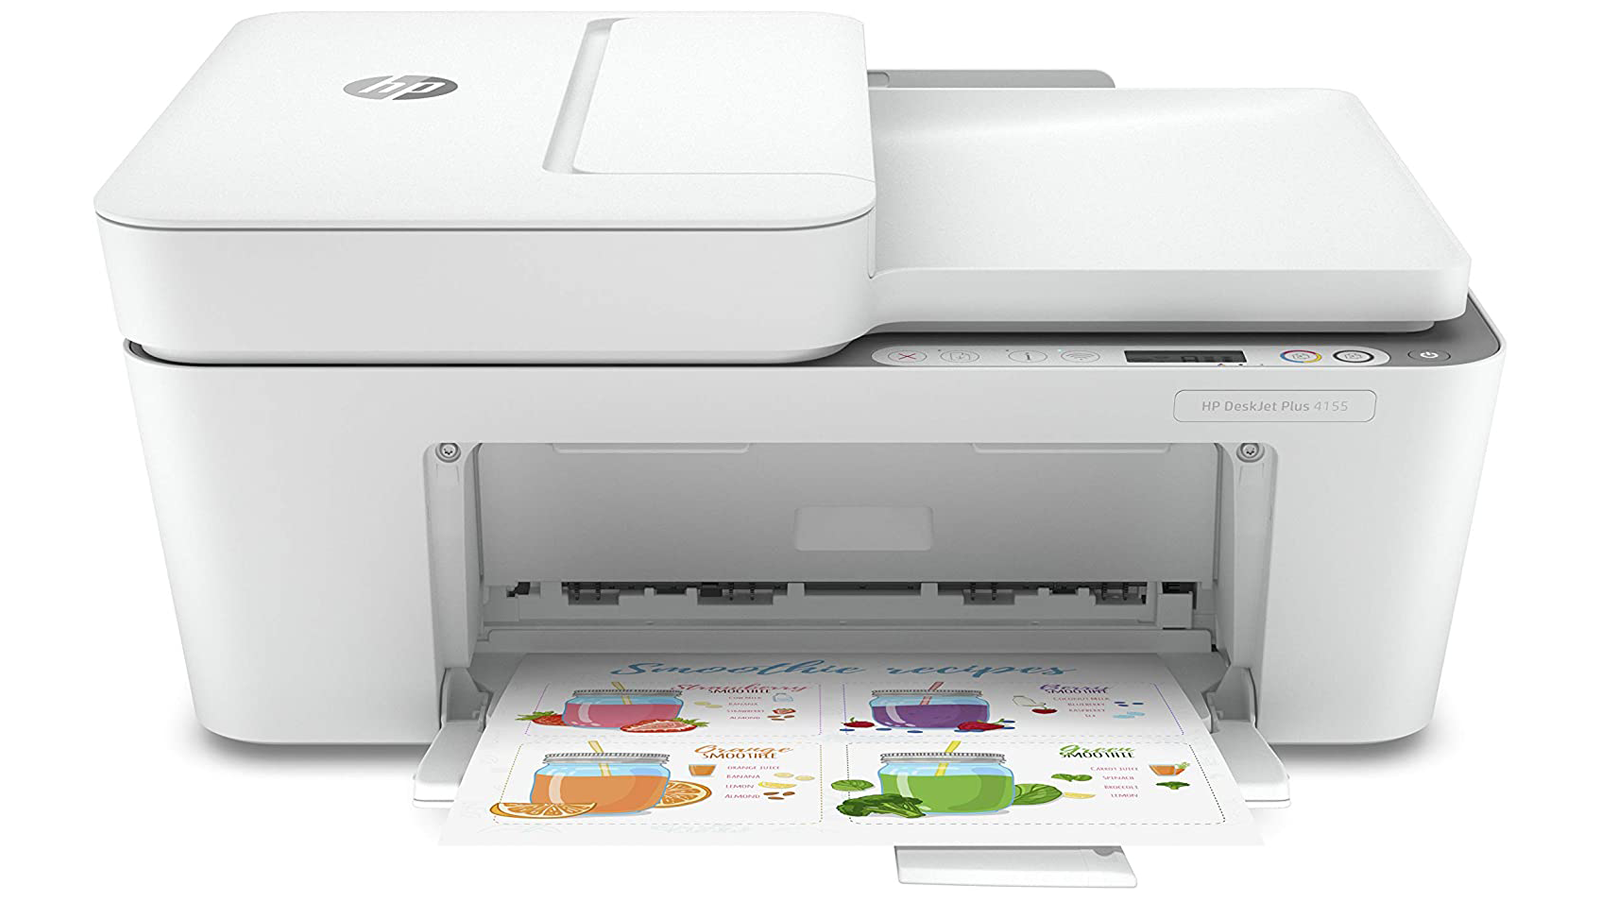 HP DeskJet 4155 Wireless All-in-One Printer